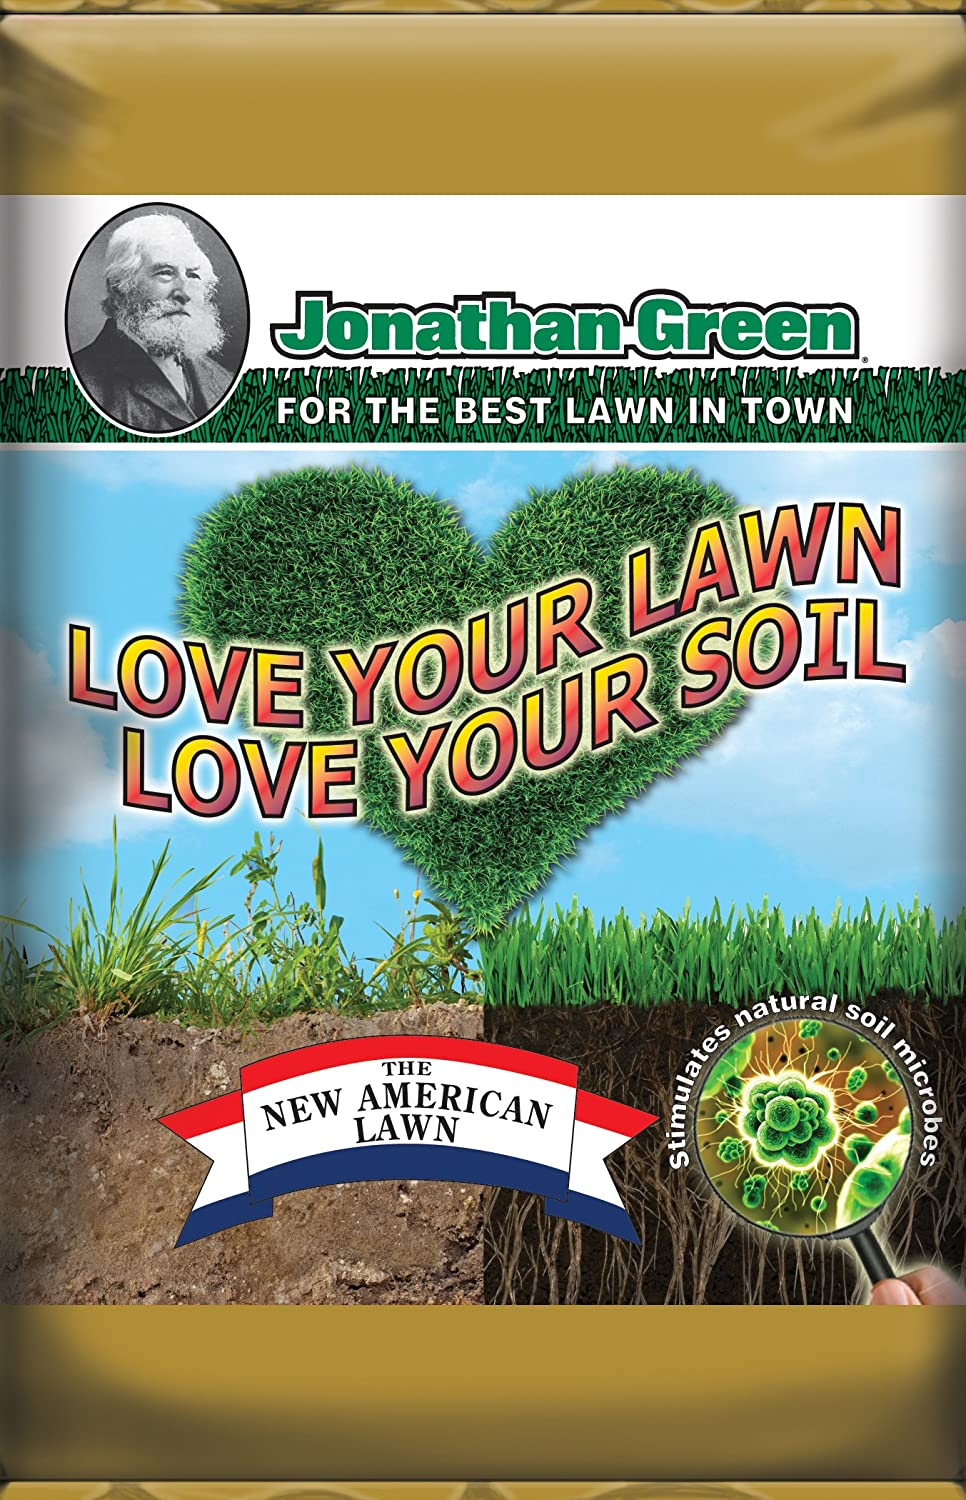 Jonathan Green & Sons 12198 Love Your Lawn - Love Your Soil Fertilizer, Covers 5,000-Sq. Ft. jonathan swift guliver